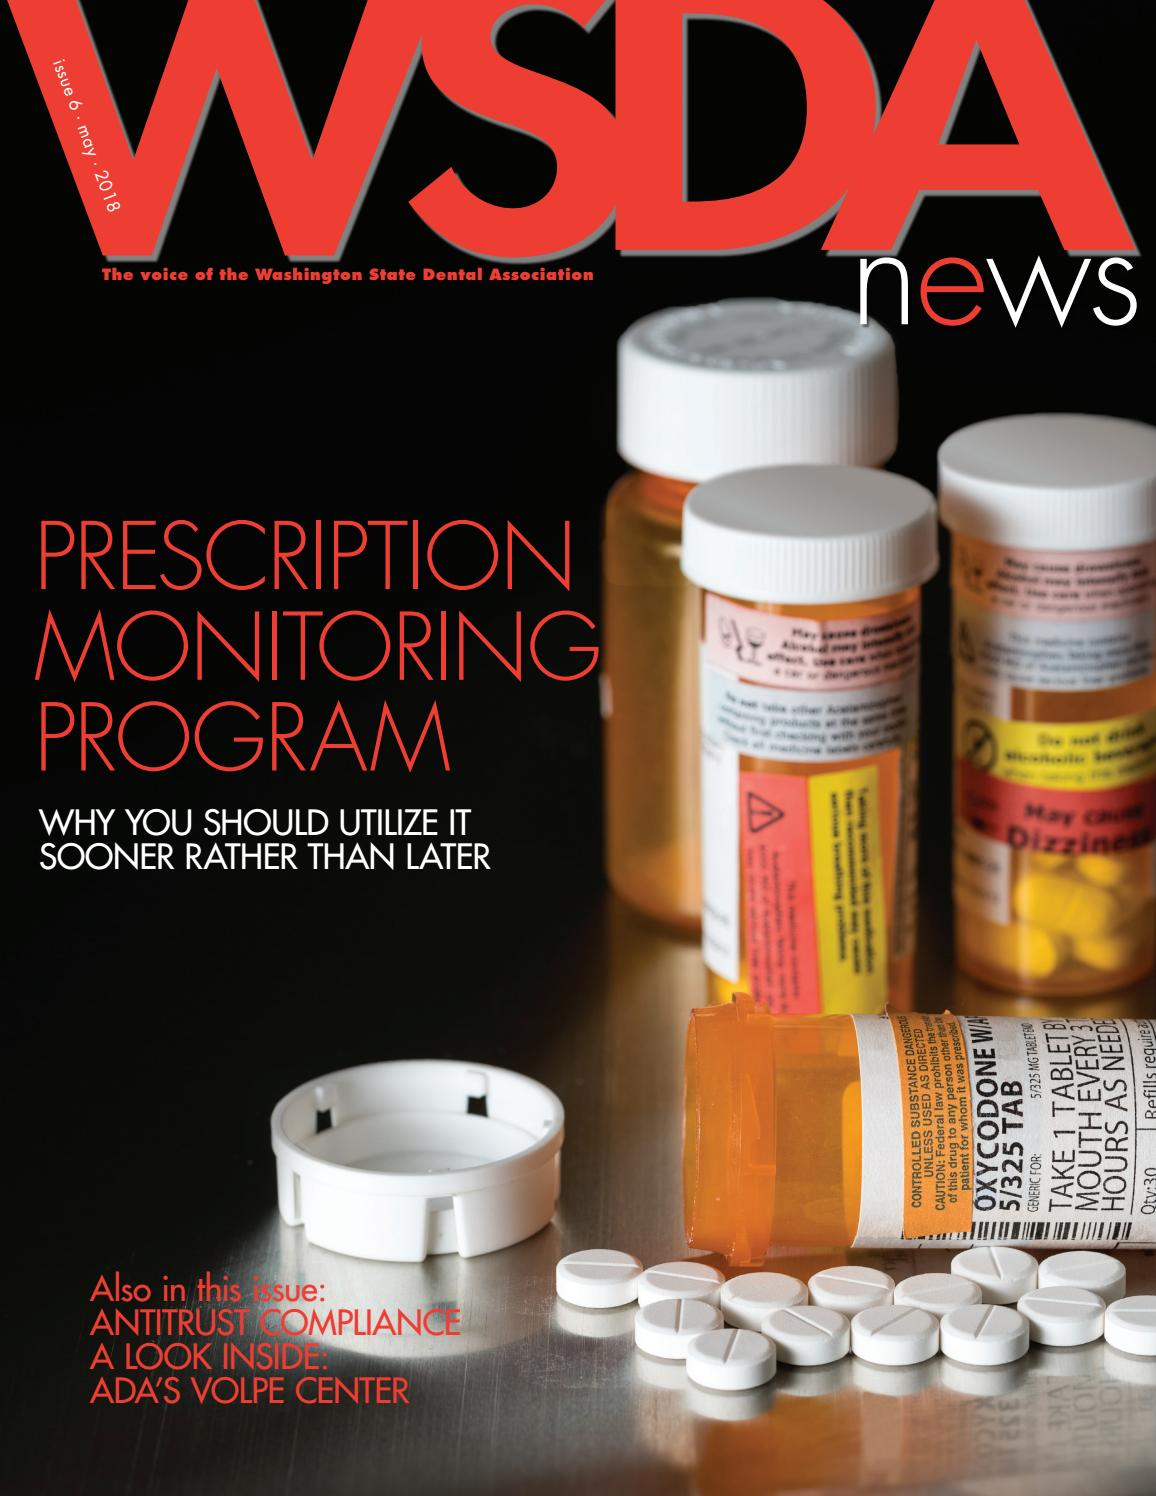 WSDA News Issue 6 May 2018 by Kainoa Trotter - issuu